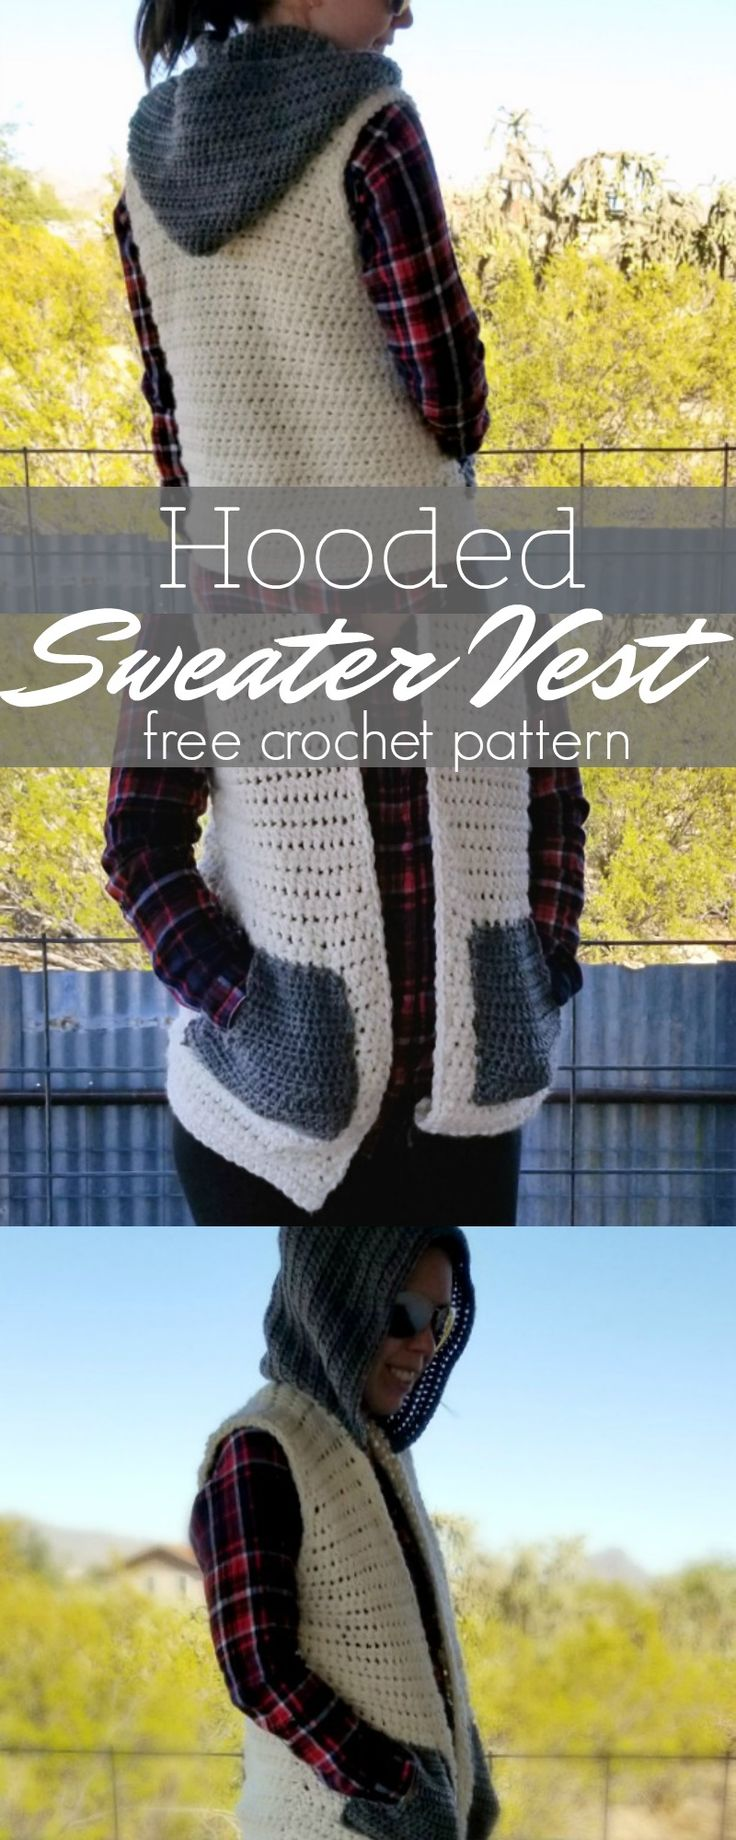 This Hooded Sweater Vest is quite possibly my favorite piece I've ever made! It's been living in my head for a few months and I'm so excited to see it come to fruition. It turned out cute, cozy, comfy… just the perfect winter accessory! PATTERN Materials Loops & Threads Charisma in Off White (4 skeins …